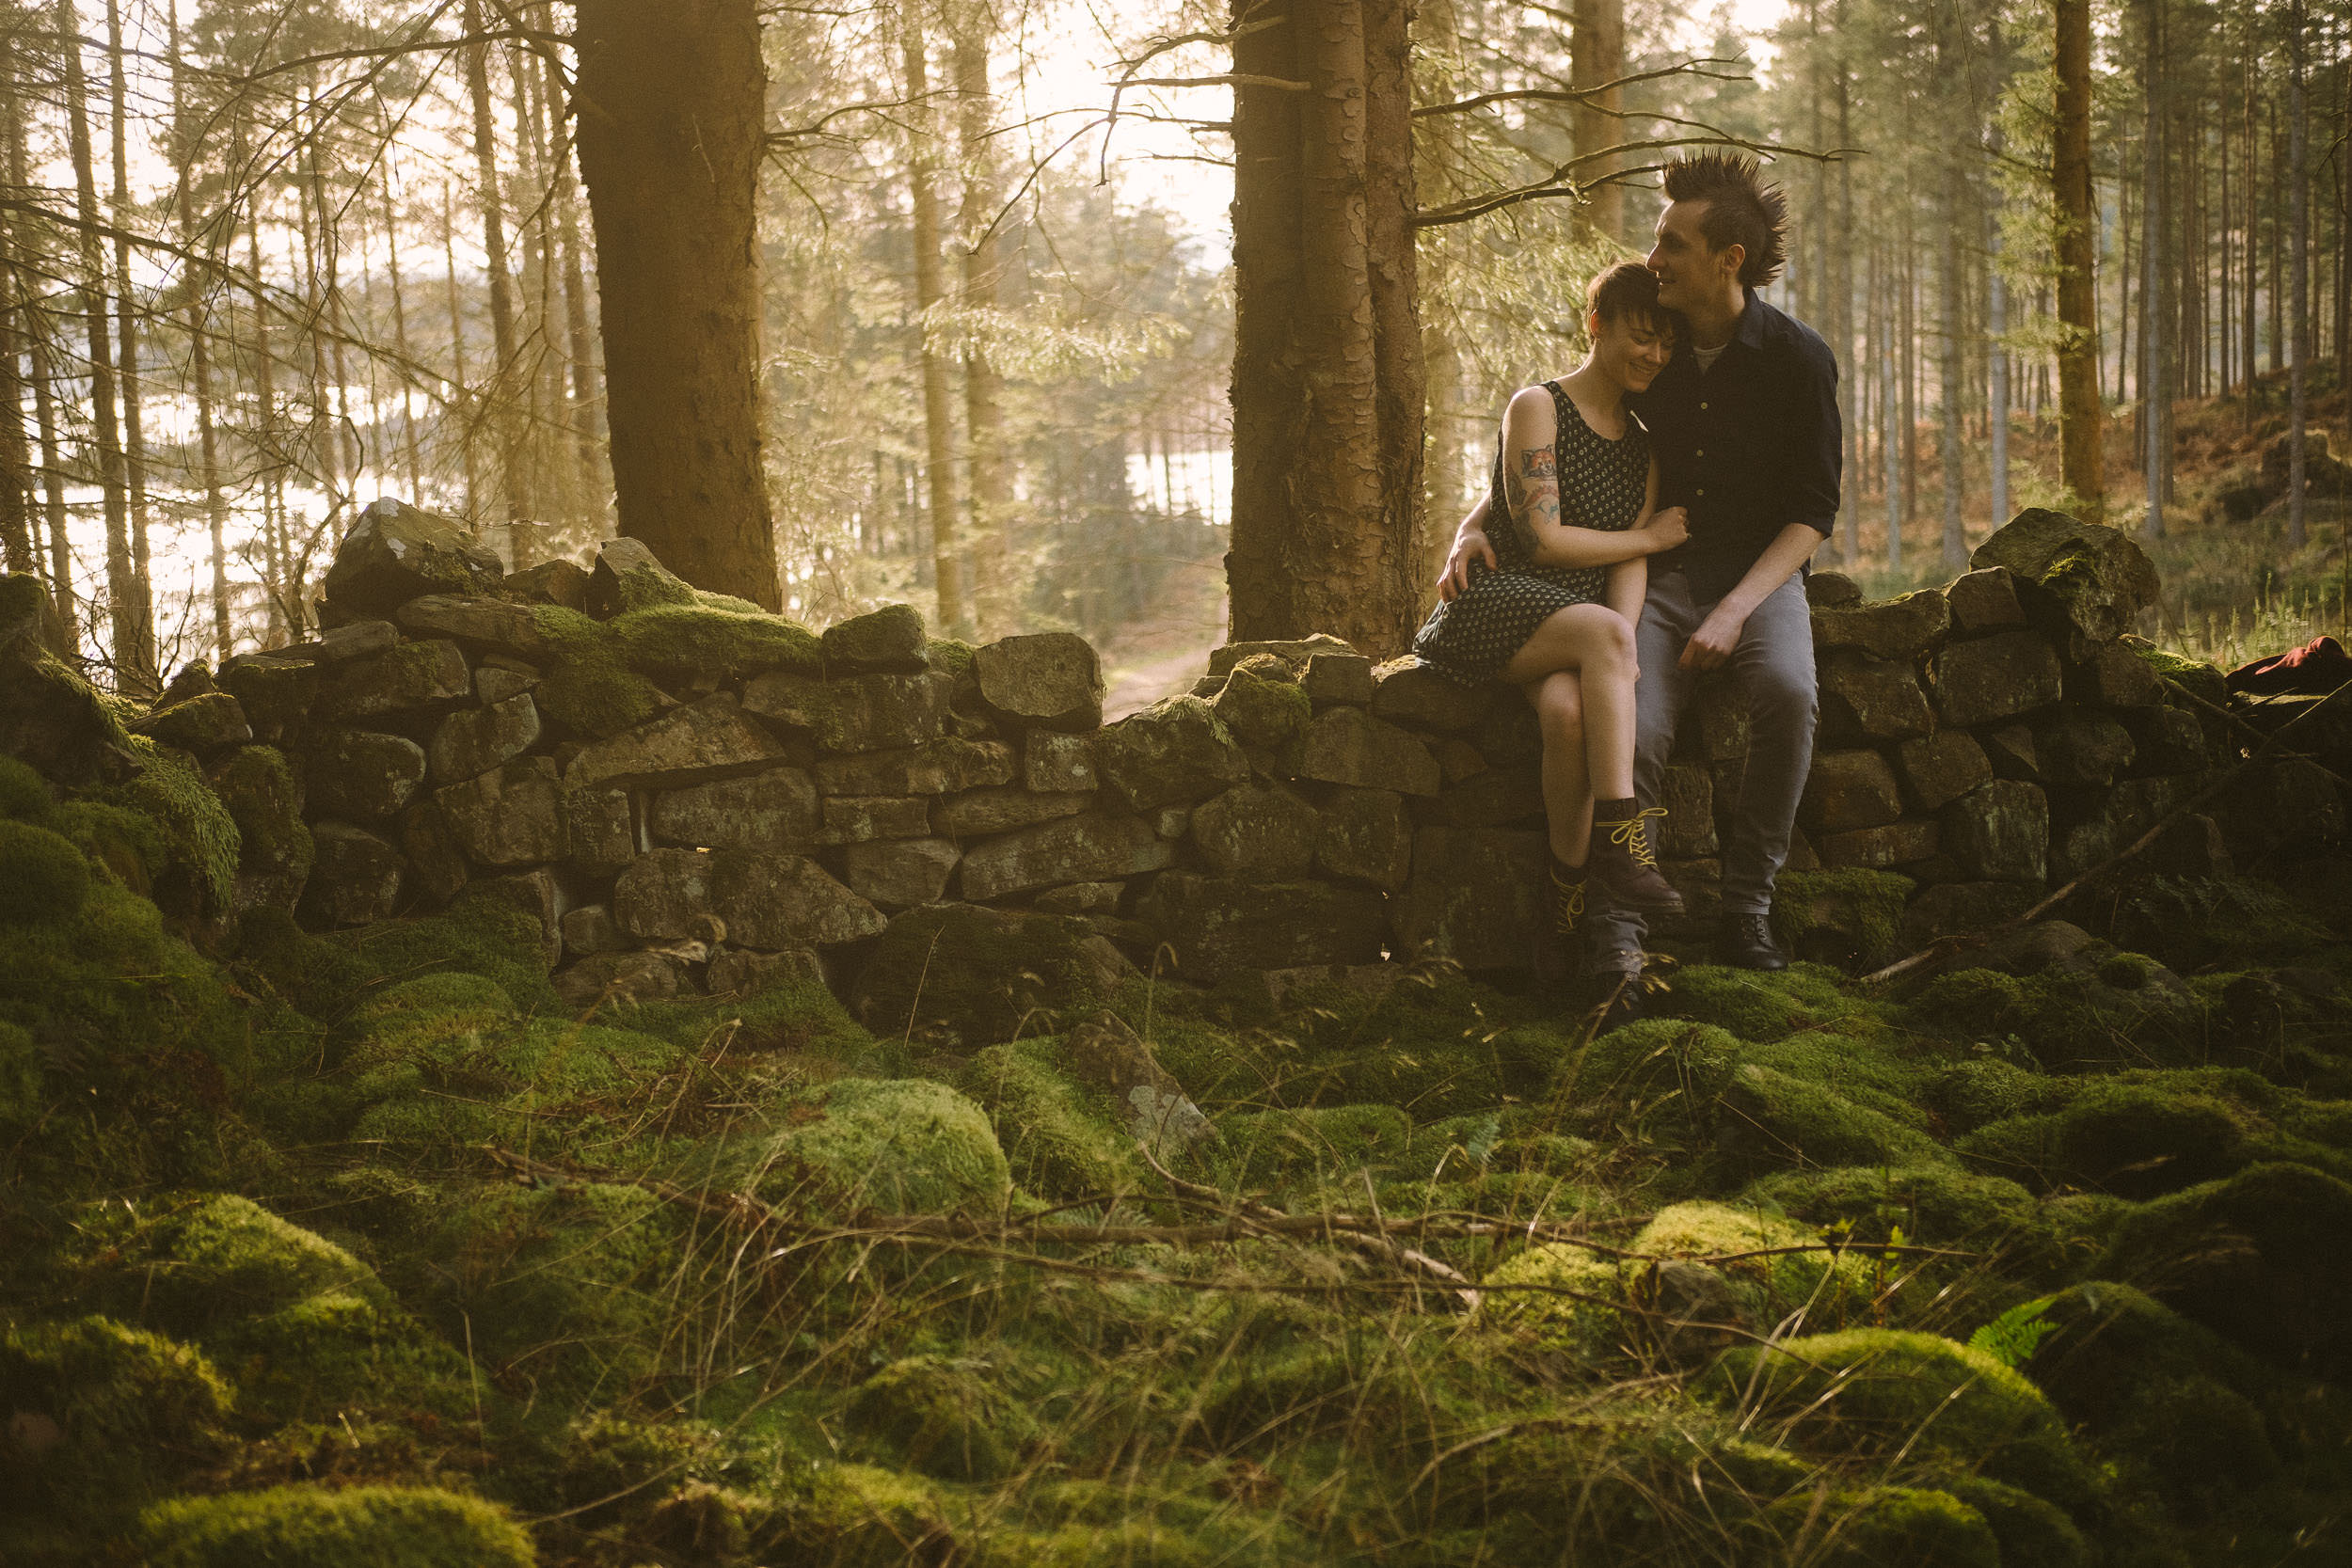 Engaged couple sit on a ruined wall in a forest